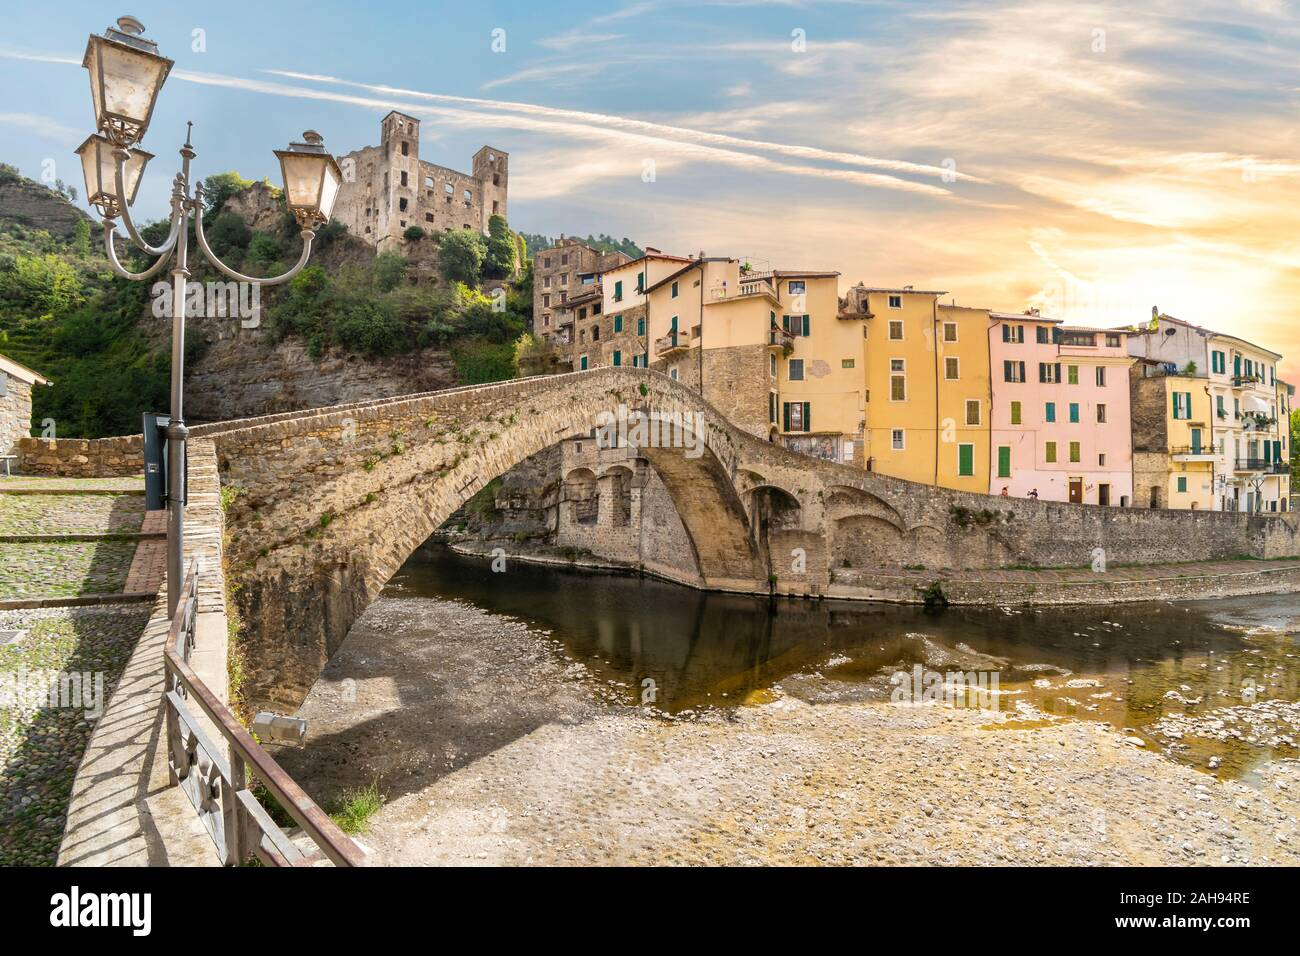 The colorful hilltop, medieval village of Dolceacqua, Italy, with it's famous castle and stone Monet bridge as the sun sets. Stock Photo